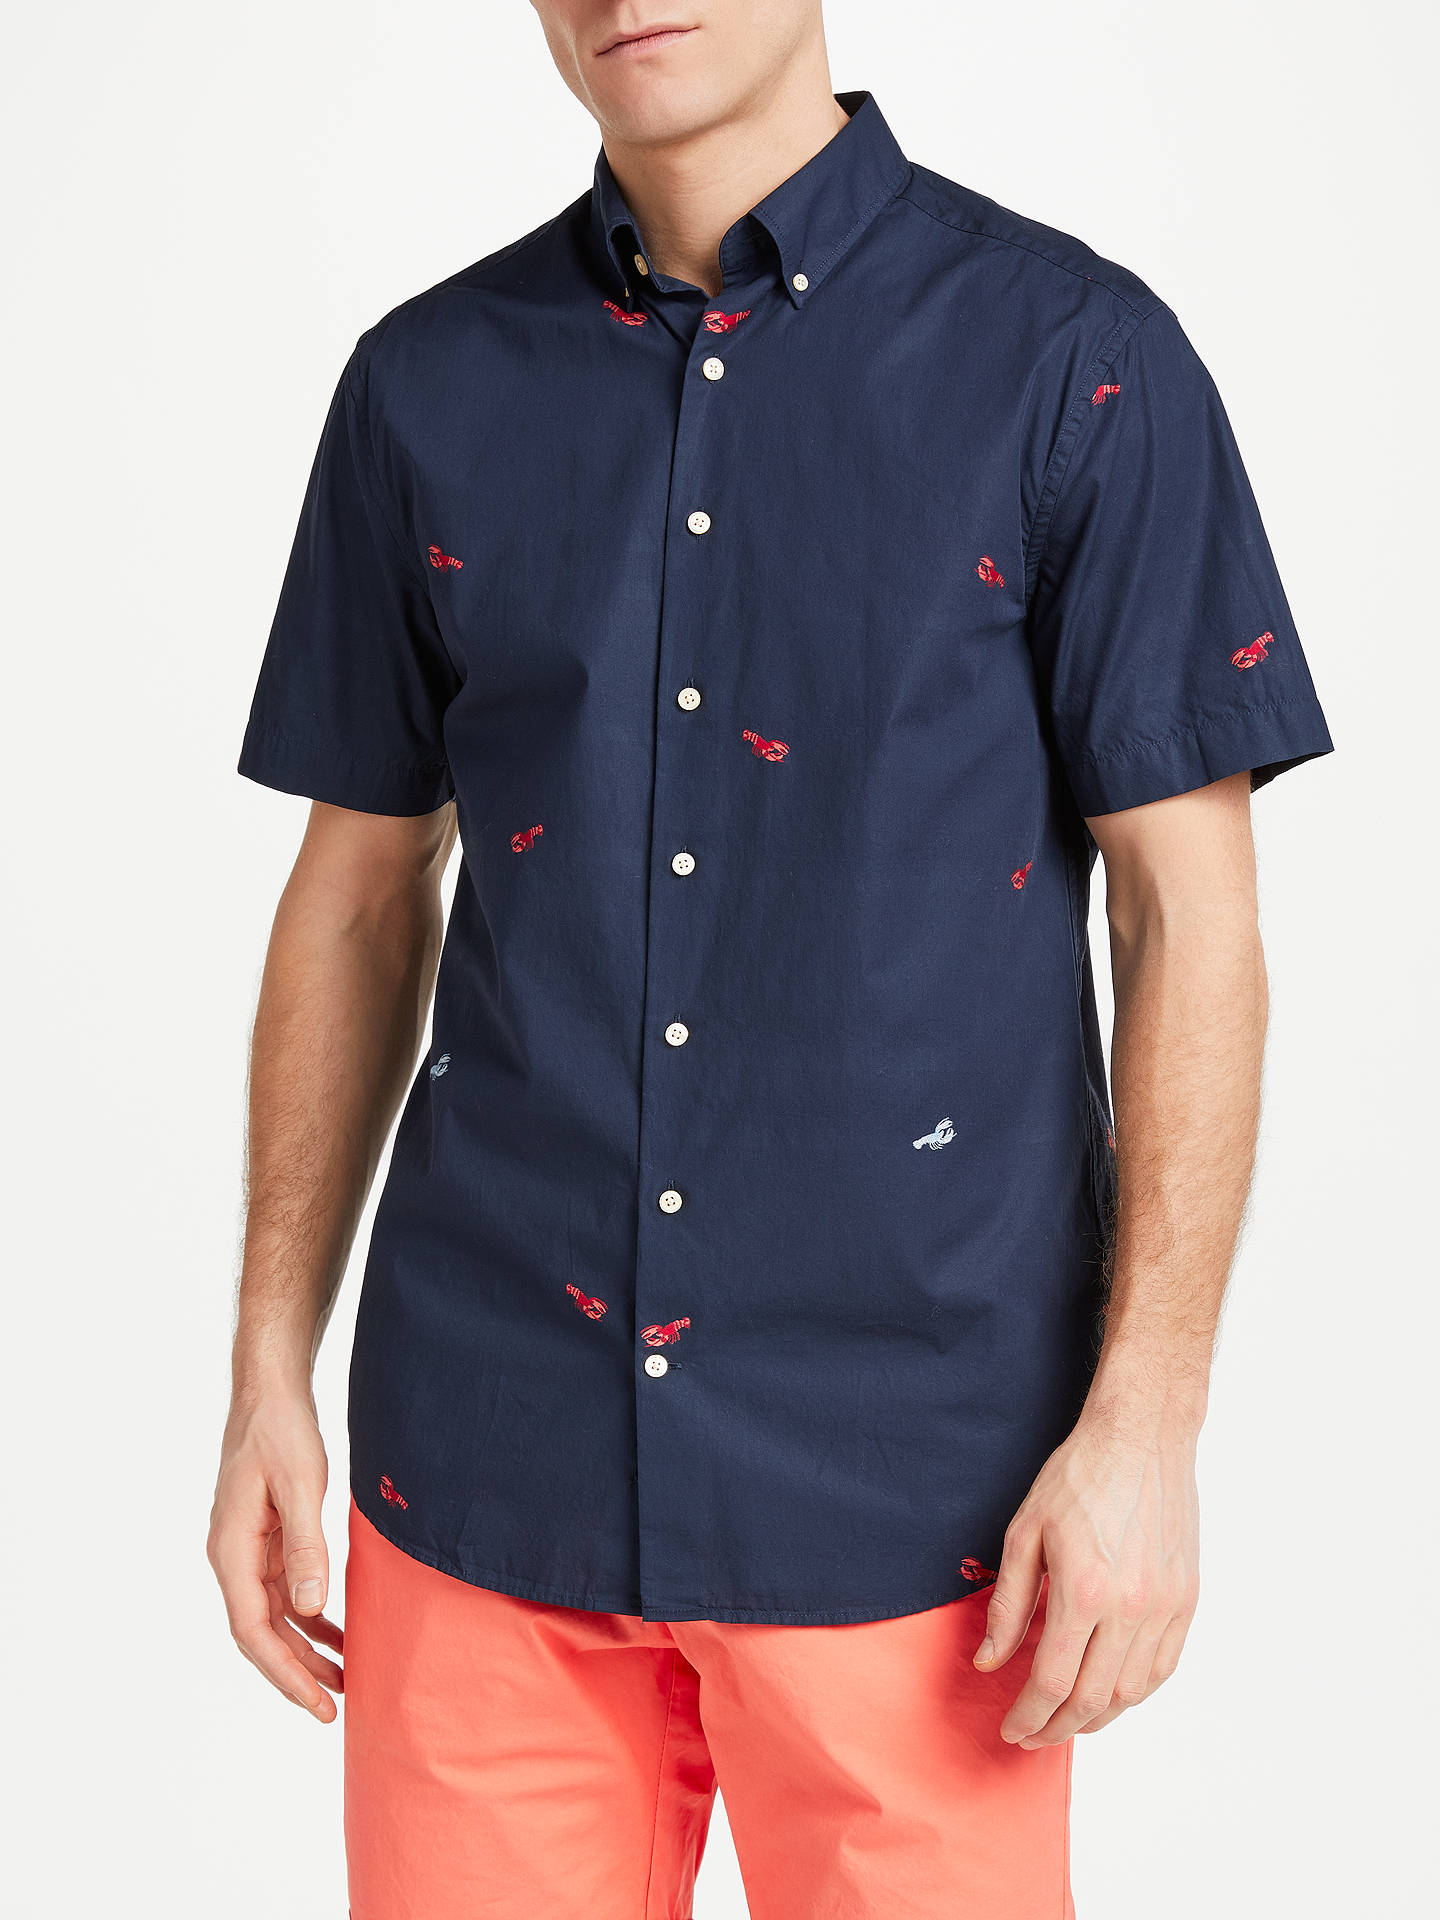 Love Lobster Mens Short Sleeve Polo Shirt Classic-Fit Blouse Sportswear